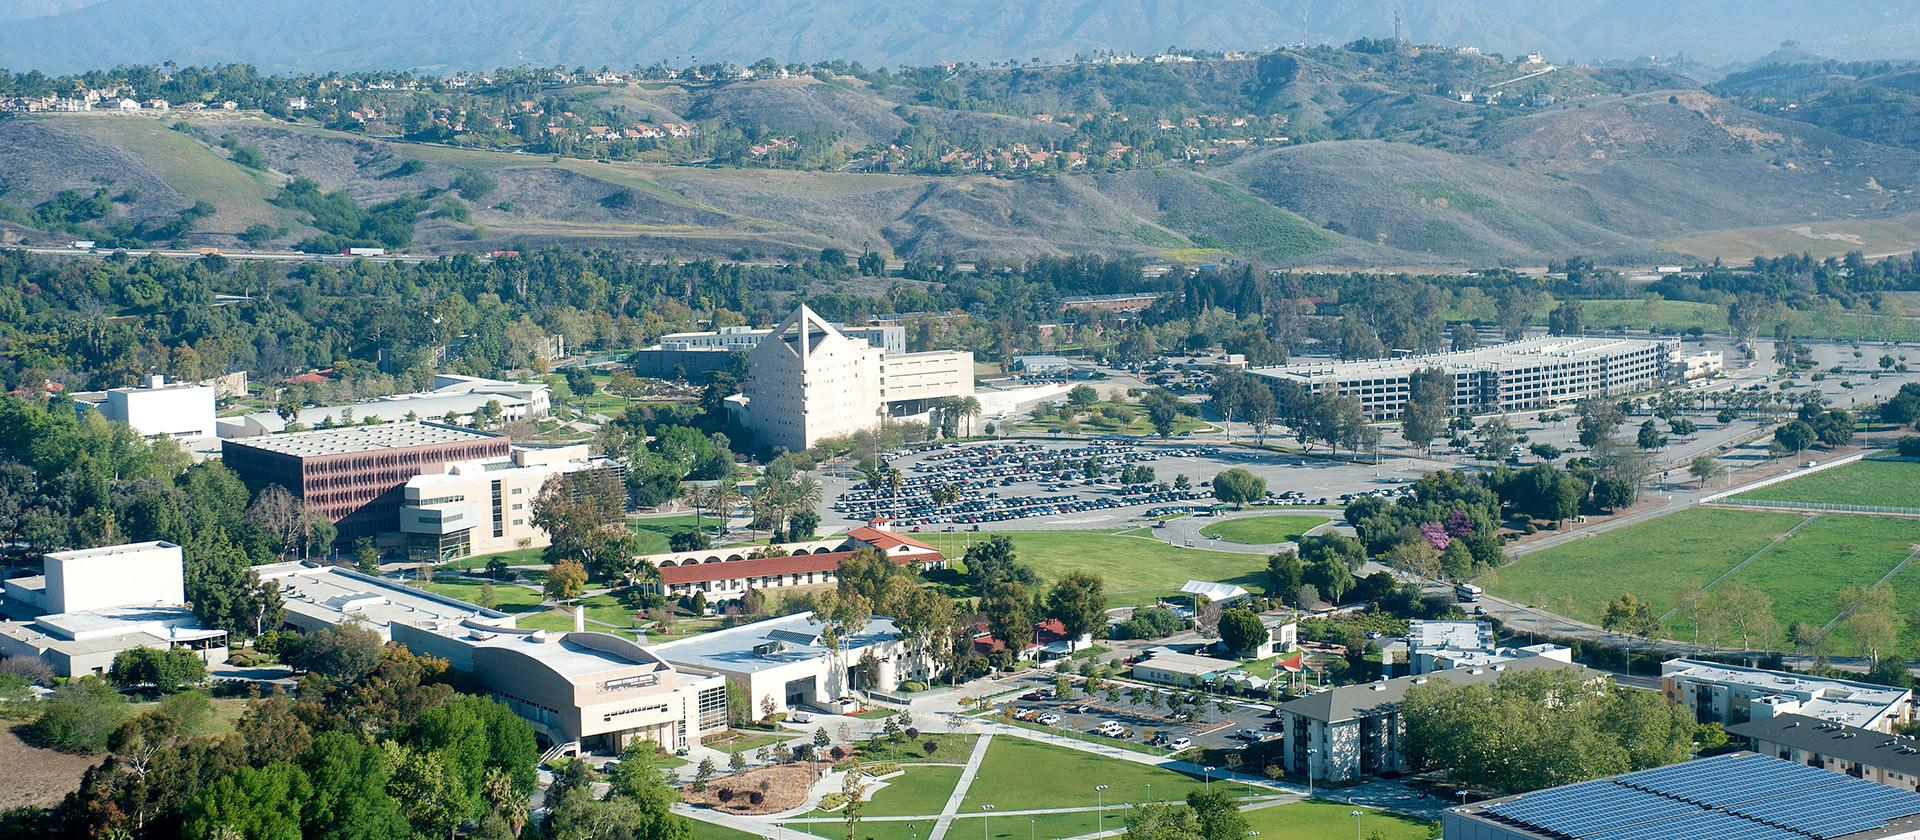 Aerial view of Cal Poly Pomona campus